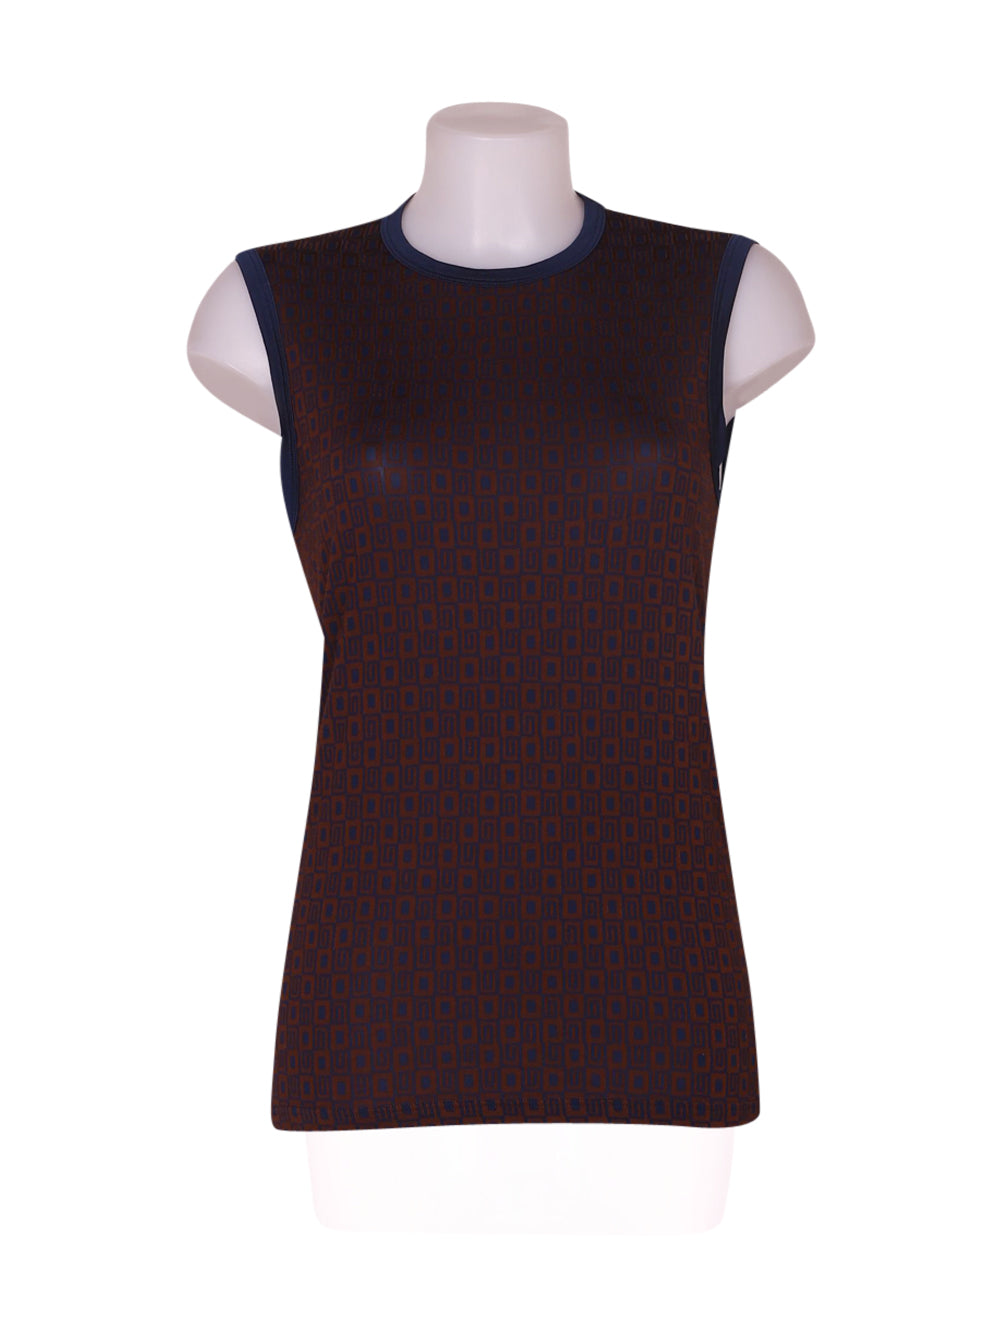 Front photo of Preloved Intimissimi Brown Woman's sleeveless top - size 8/S